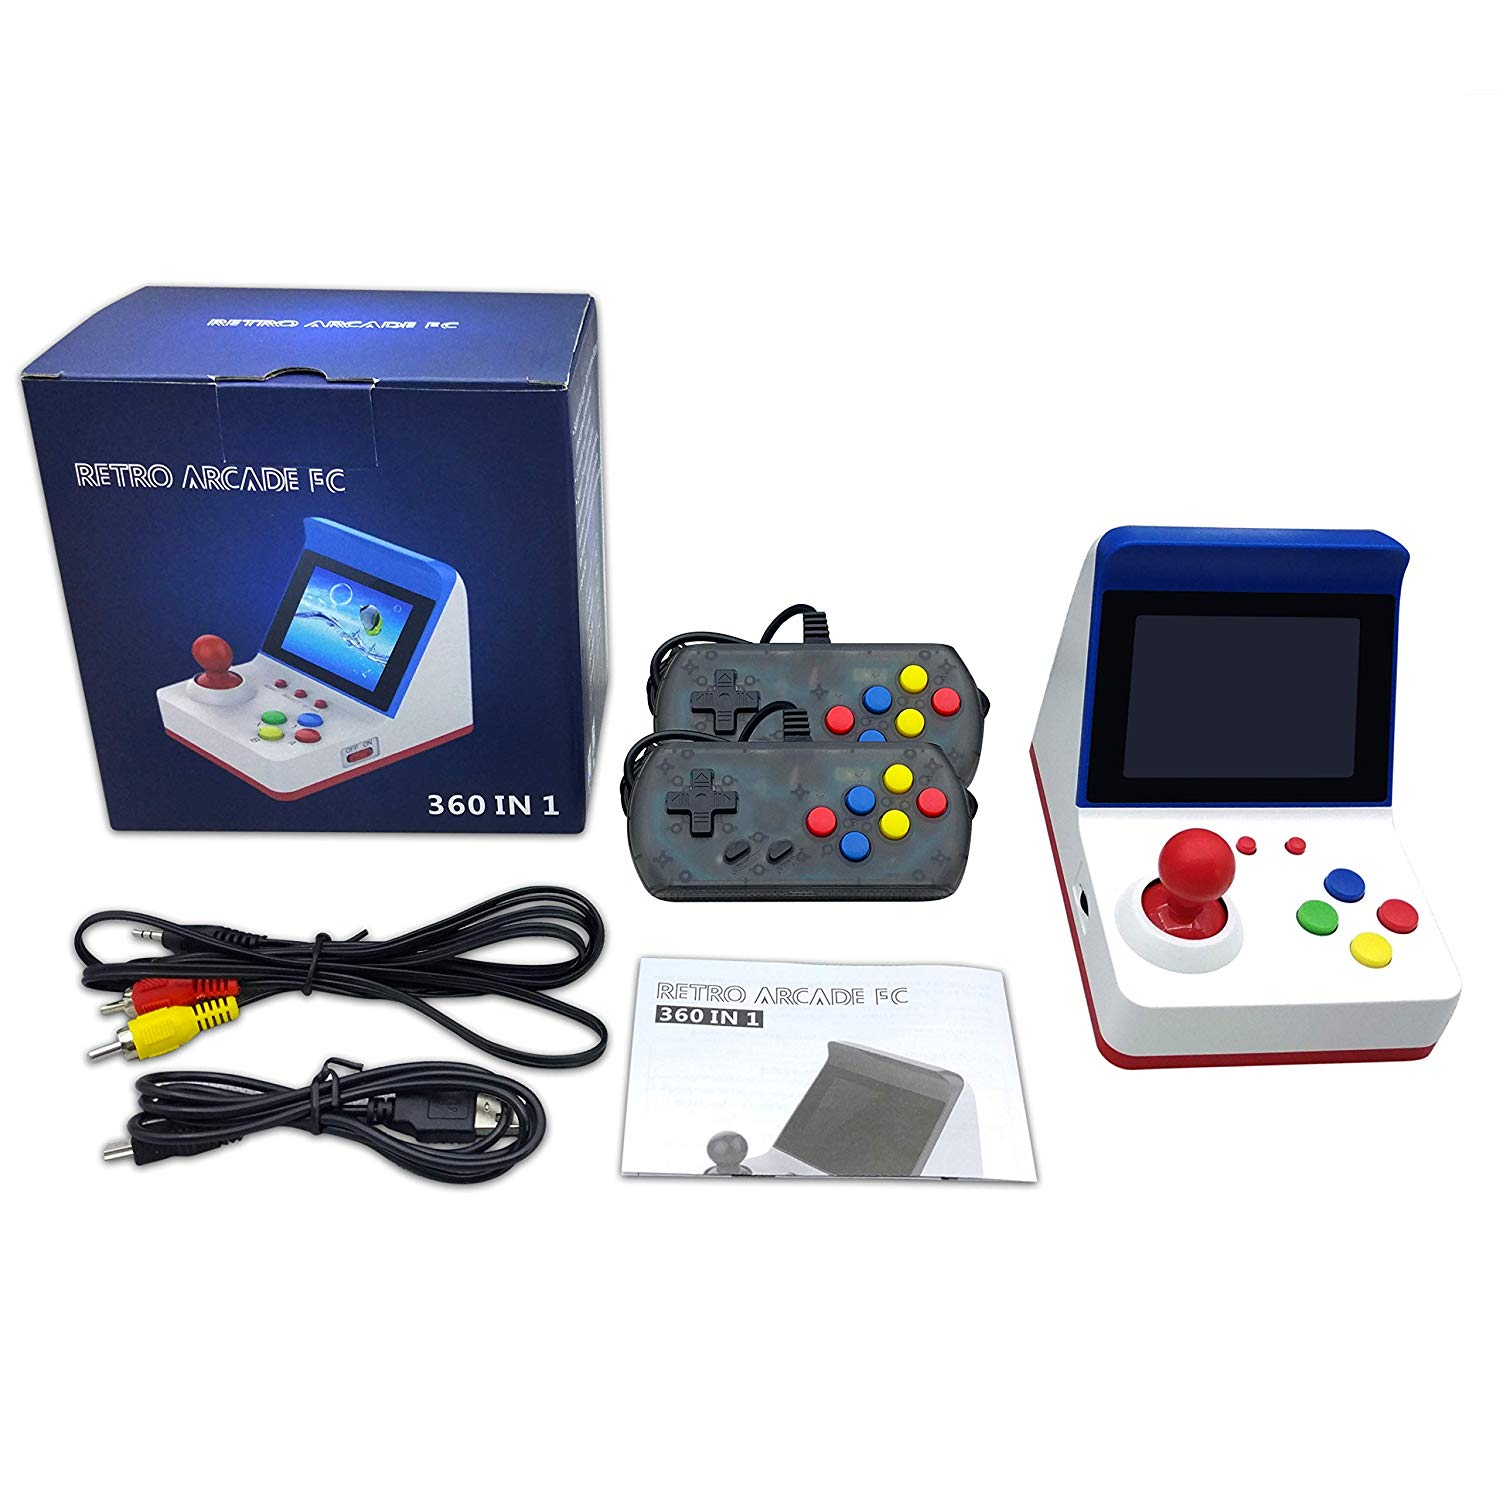 Retro Arcade FC 360 in 1 Mini Handheld Video Game Console 3 inch